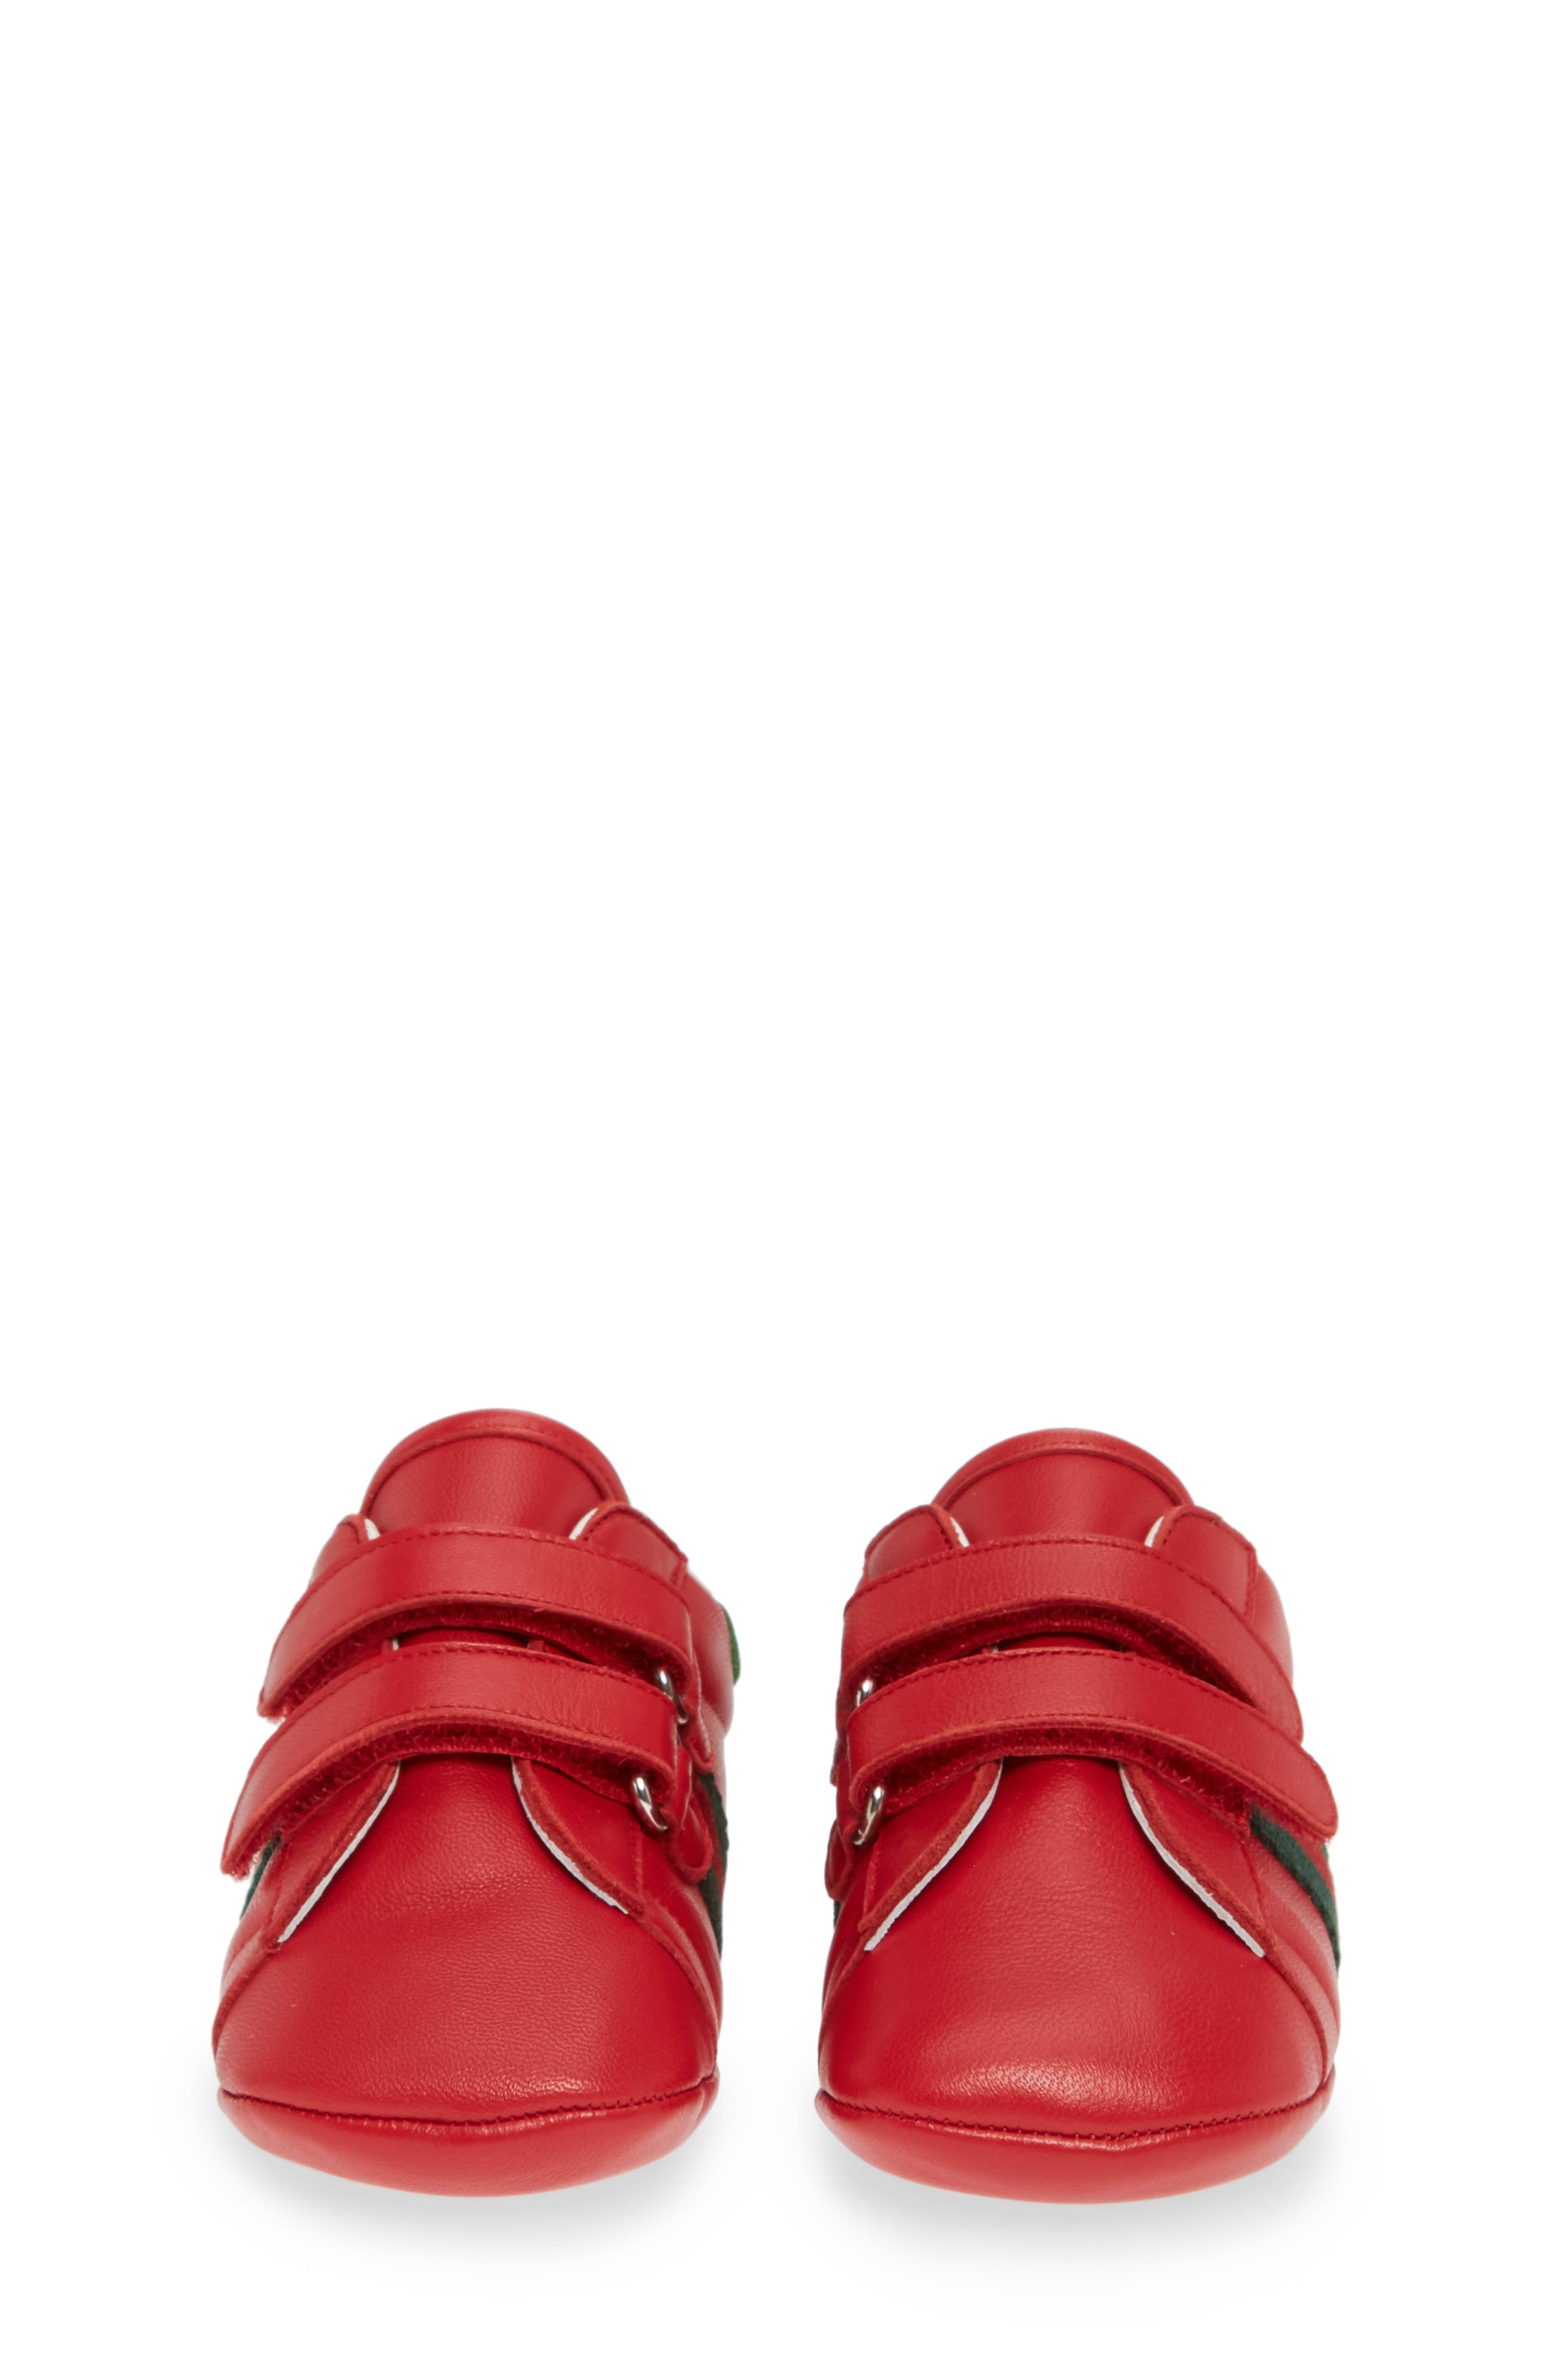 GUCCI,                             Ace Crib Shoe,                             Alternate thumbnail 5, color,                             RED